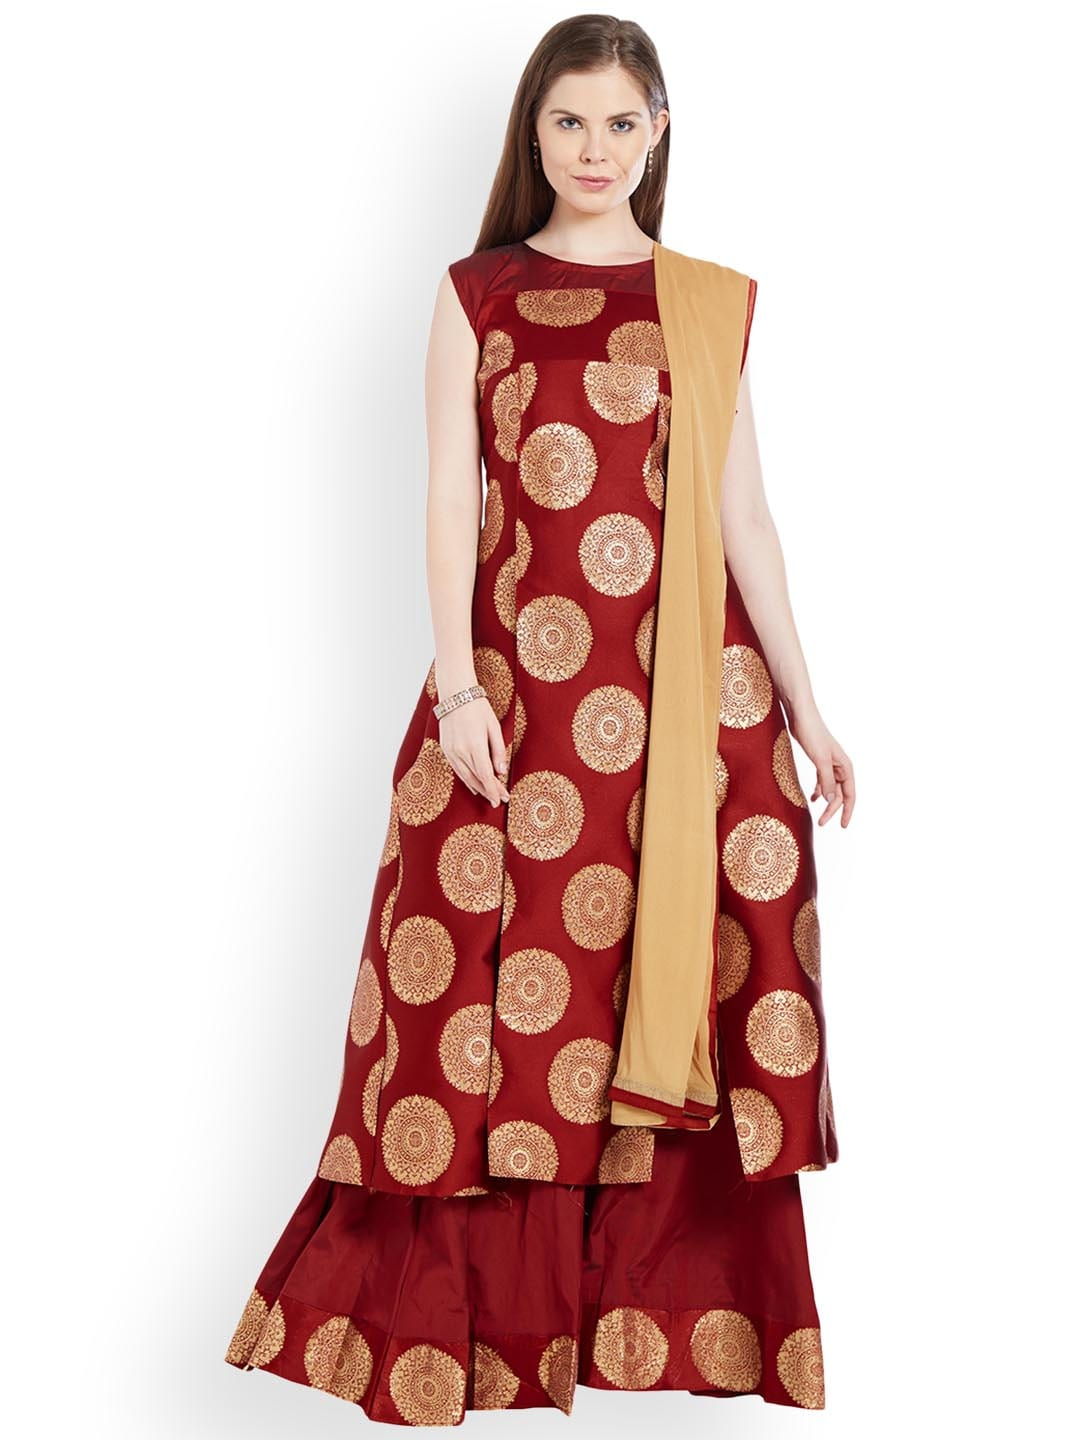 Viva N Diva Maroon & Beige Woven Design Ready to Wear Lehenga & Semi-Stitched Blouse with Dupatta image